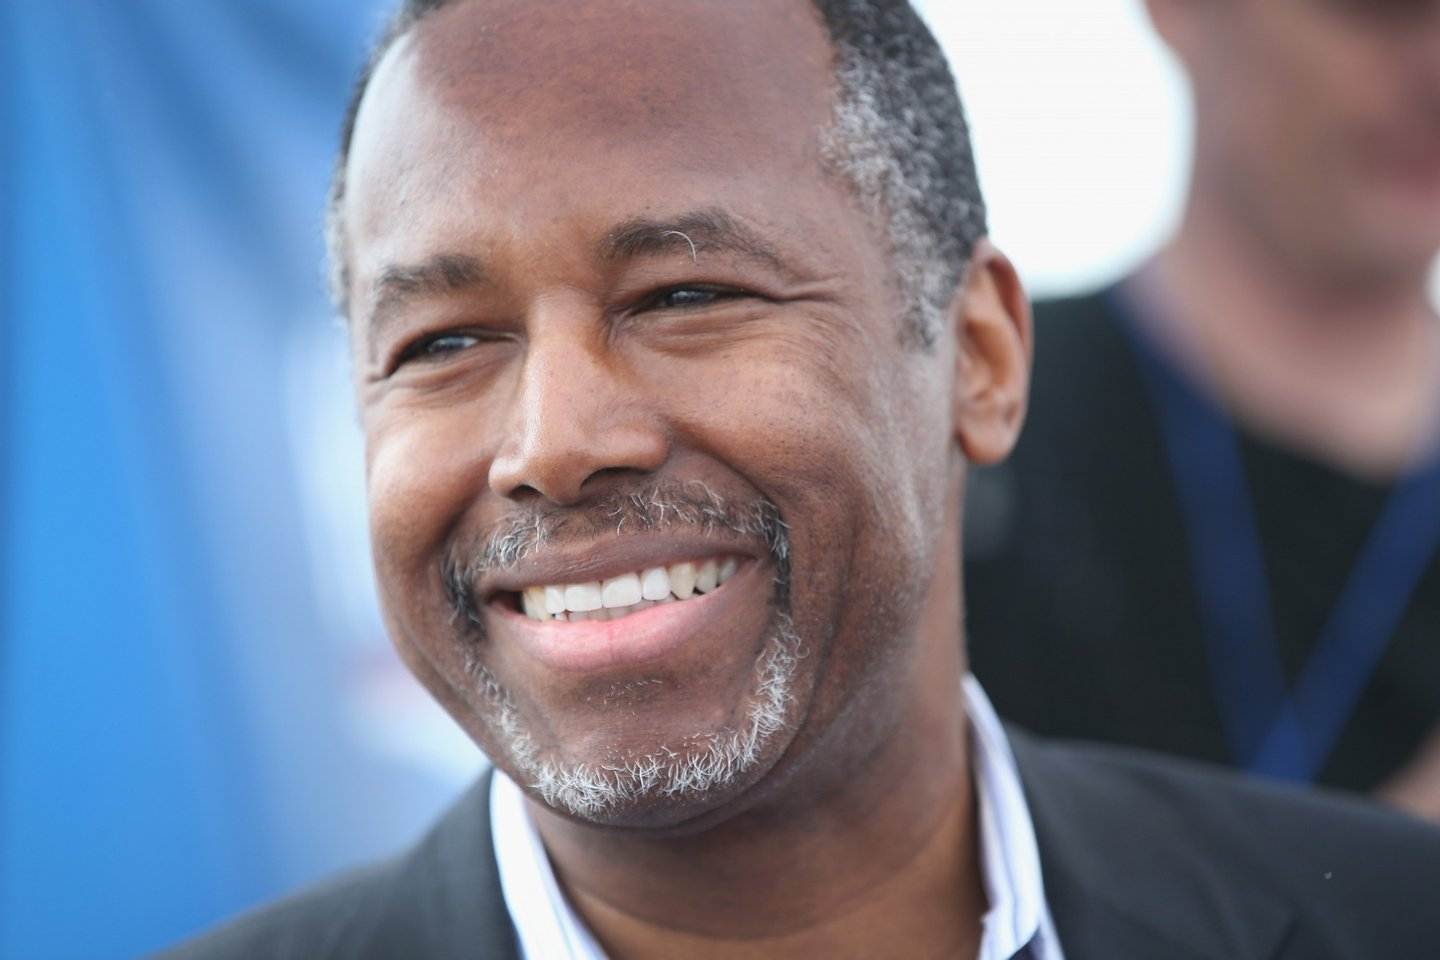 BOONE, IA - JUNE 06: Republican presidential hopeful Dr. Ben Carson speaks at a Roast and Ride event hosted by freshman Senator Joni Ernst (R-IA) on June 6, 2015 in Boone, Iowa. Ernst is hoping the event, which featured a motorcycle tour, a pig roast, and speeches from several 2016 presidential hopefuls, becomes an Iowa Republican tradition. (Photo by Scott Olson/Getty Images)